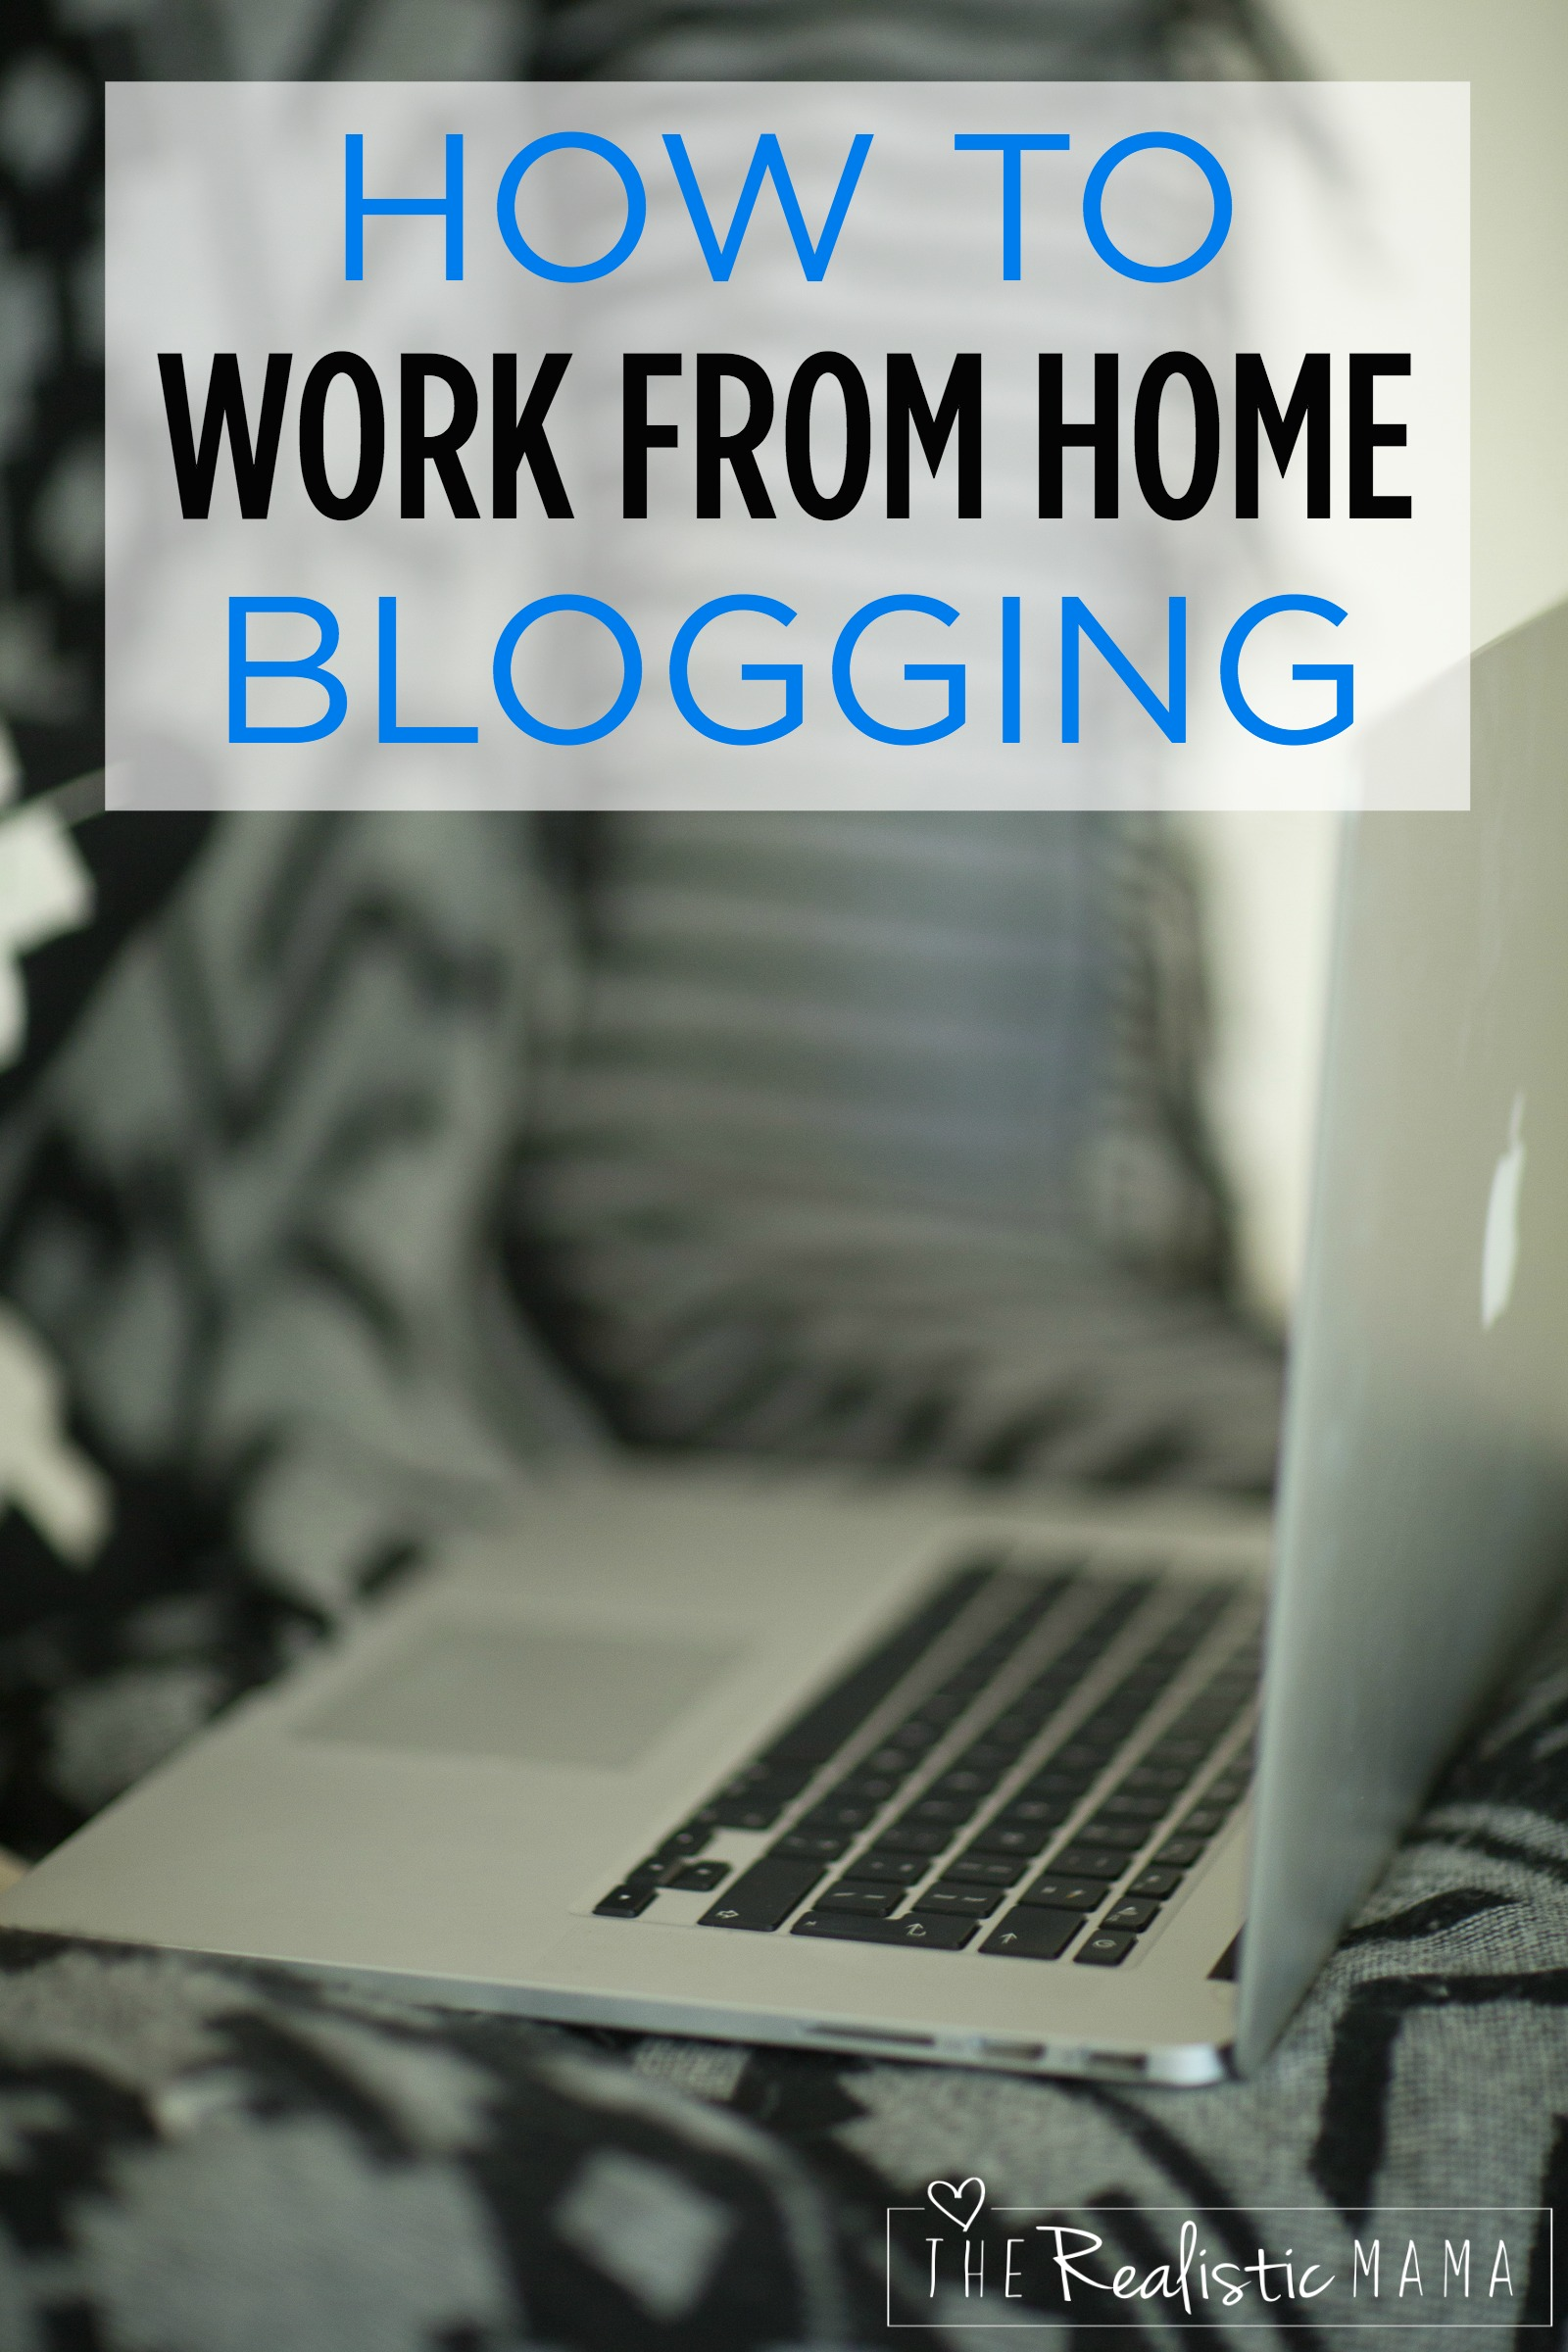 Work from home blogging - inerview with everything you need to know about starting a blog, what the first year looks like, how much you can realistically make, and more.